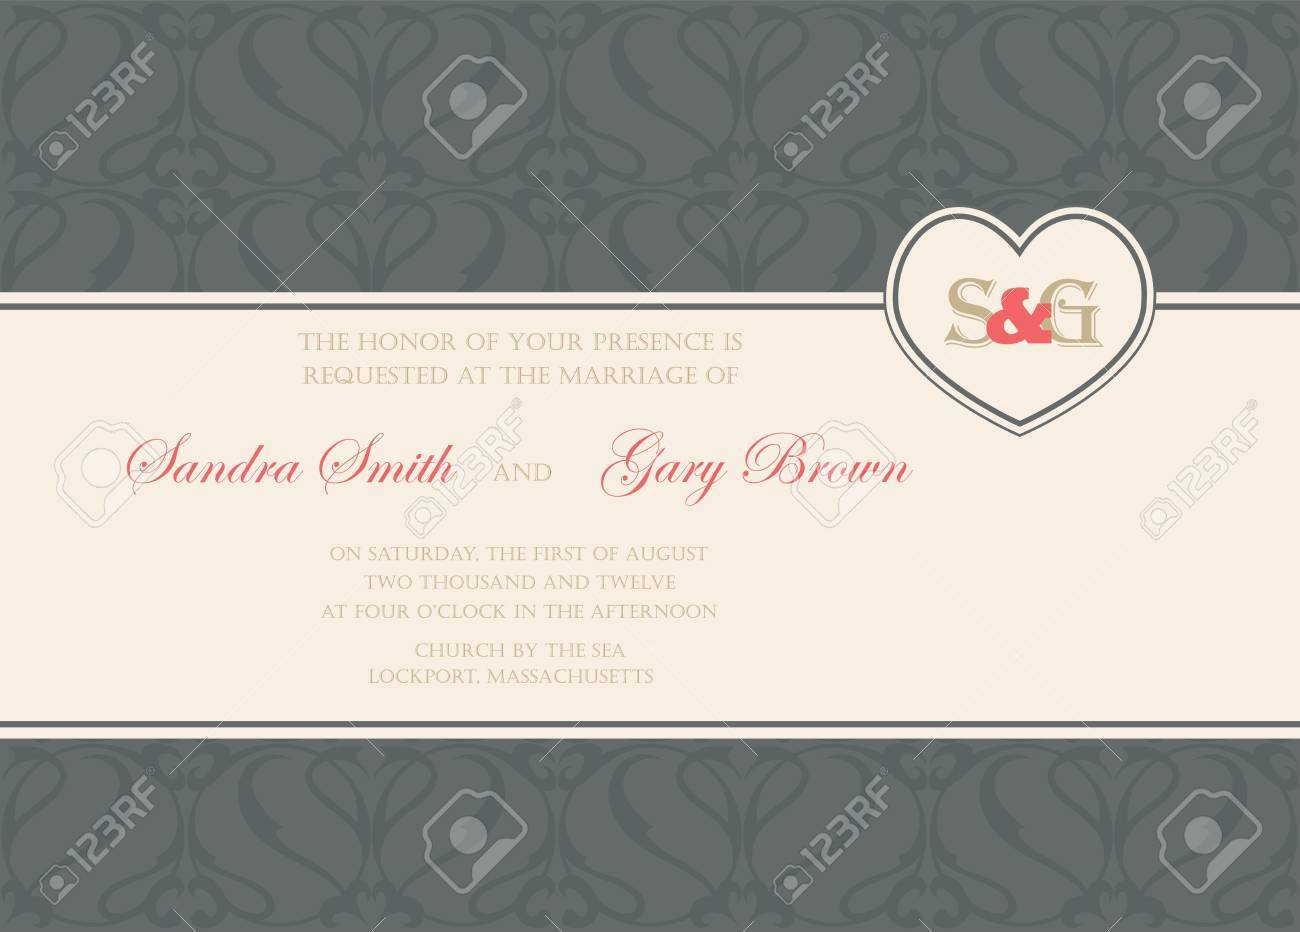 Vintage wedding invitation or announcement card Stock Vector - 20358132